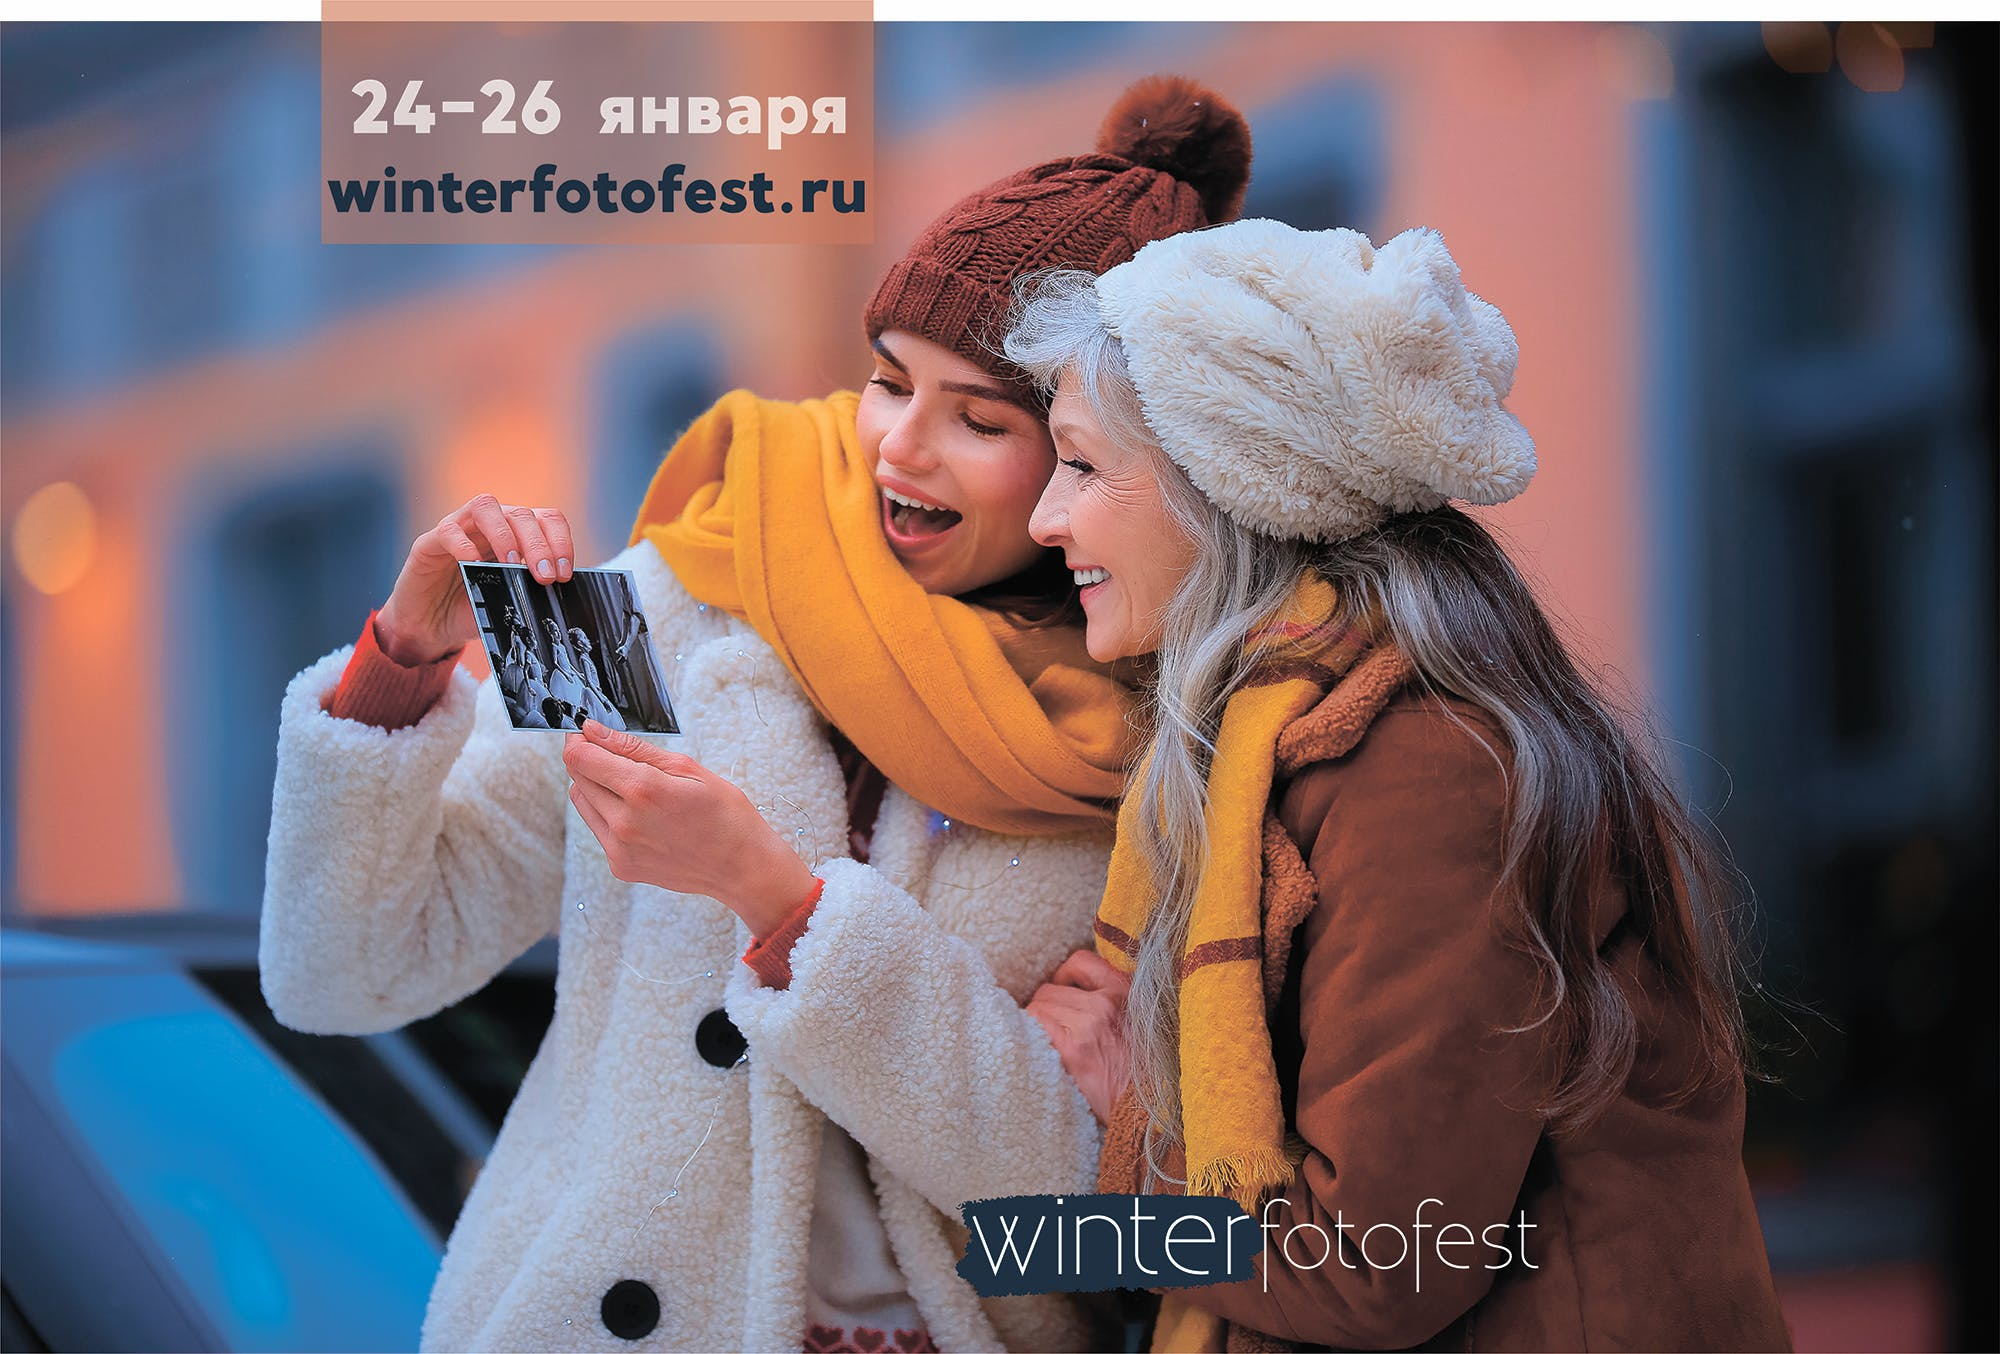 Winterfotofest Black Friday 2019 discount code for photographers